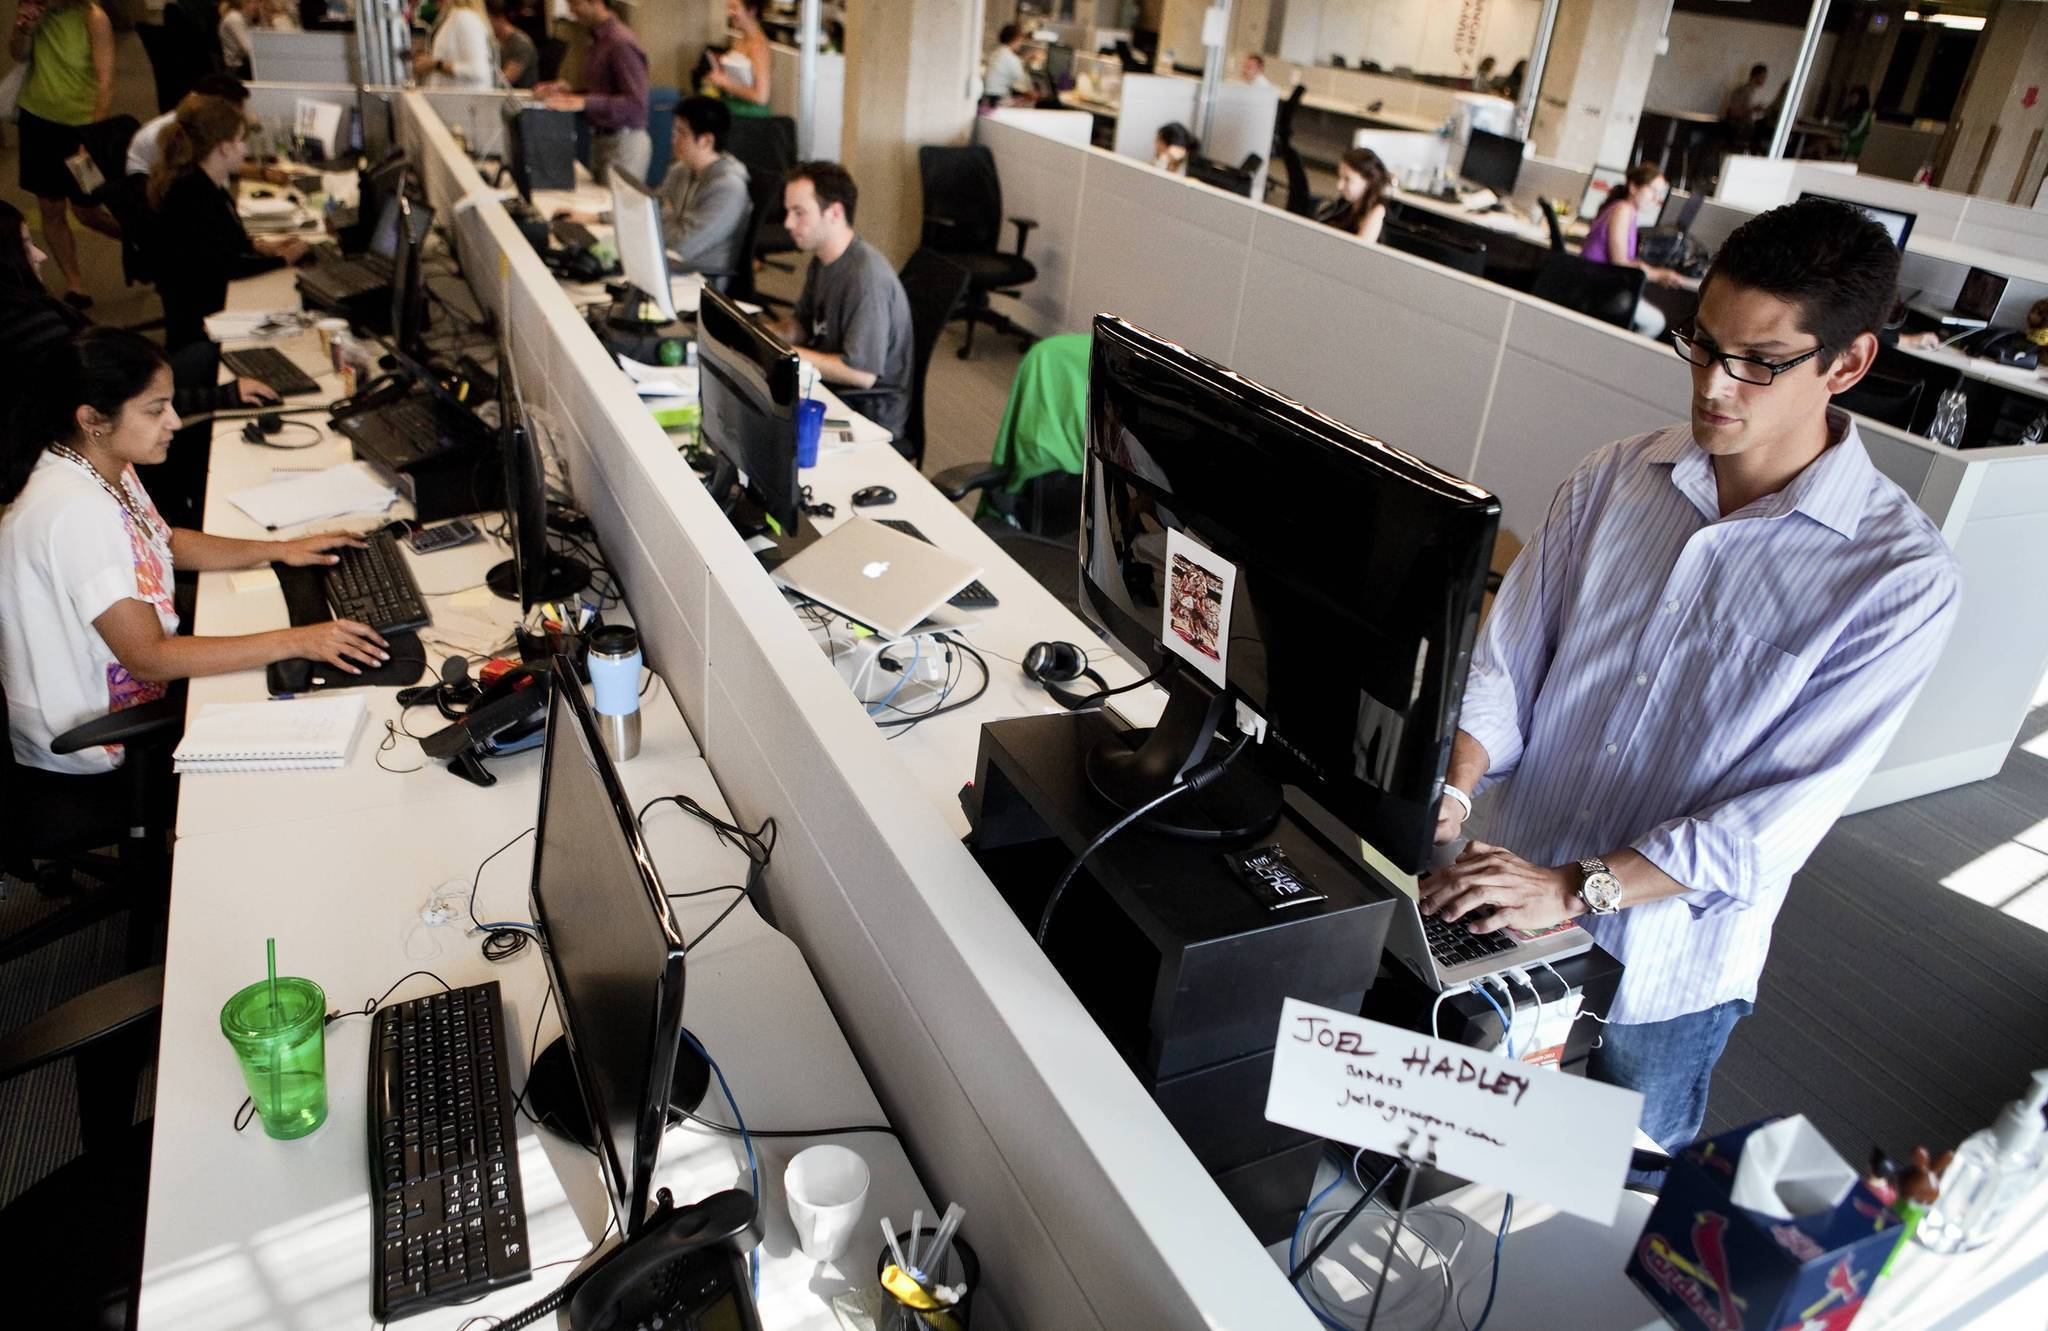 Sedentary office workers try standing desks  Chicago Tribune